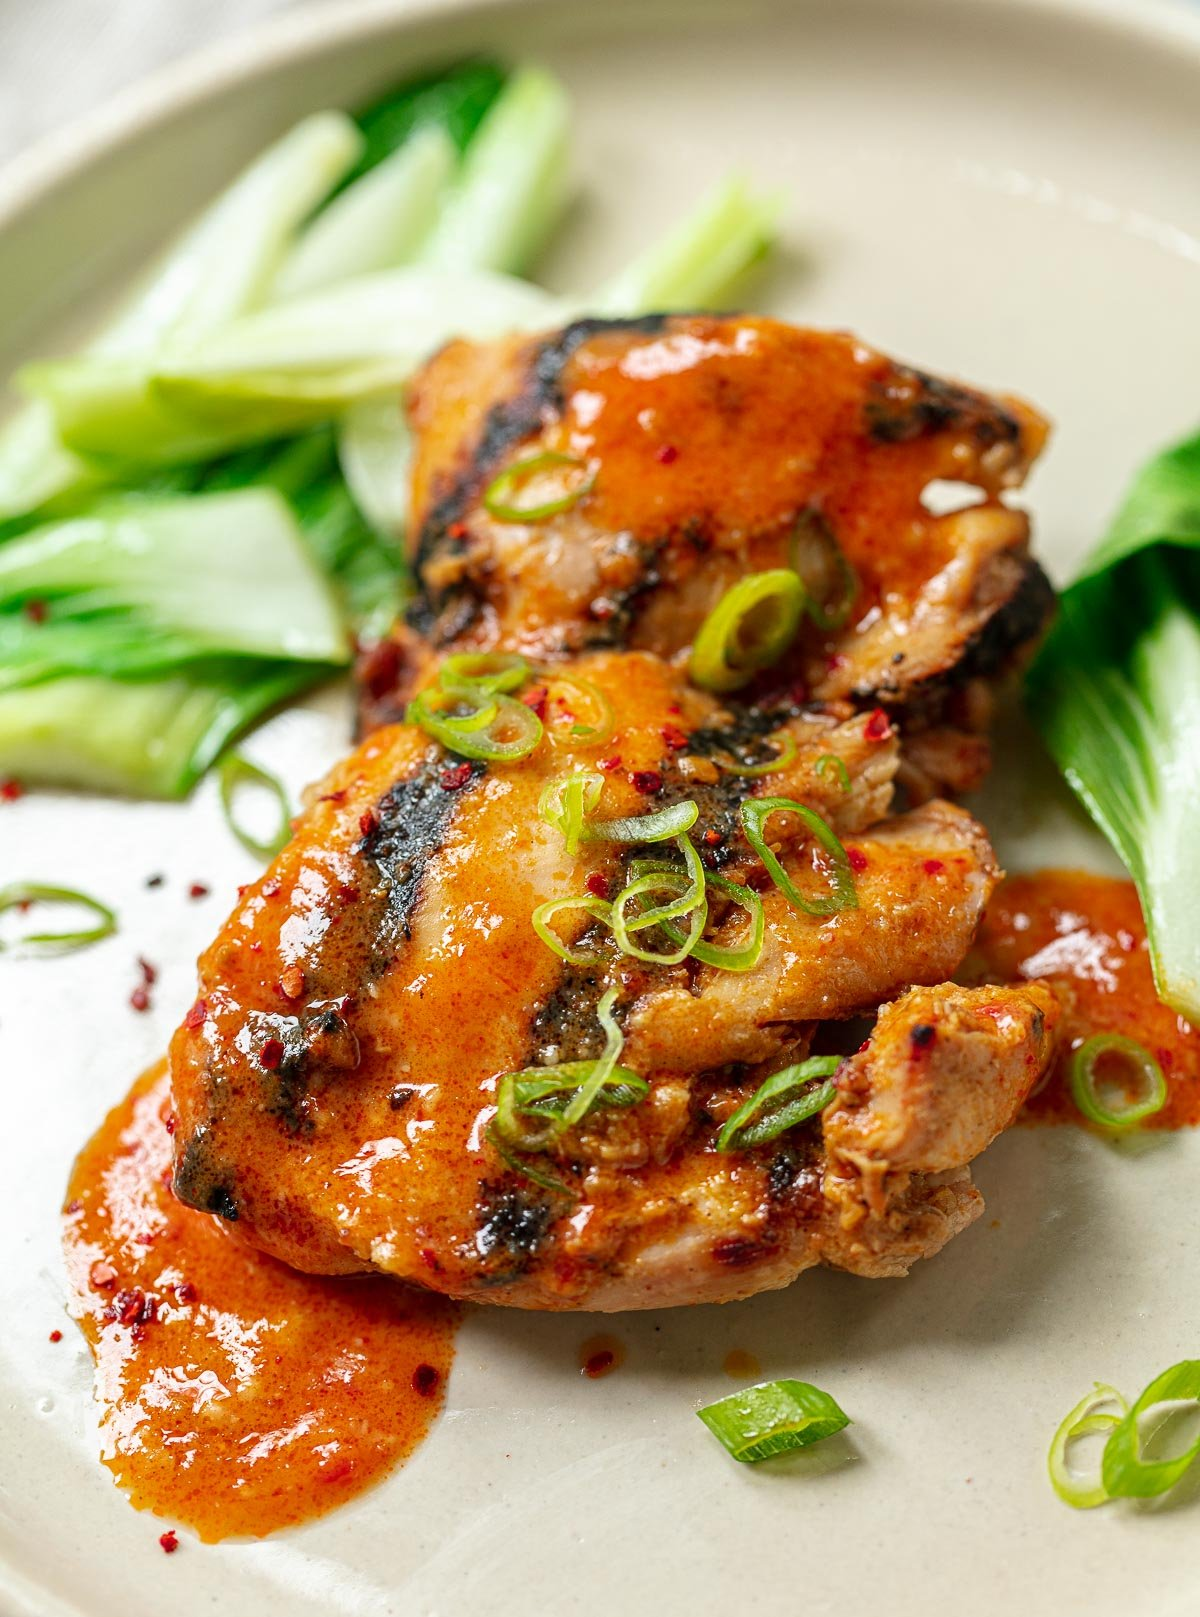 Two glazed chicken thighs on a plate with gochujang sauce and chopped scallion.